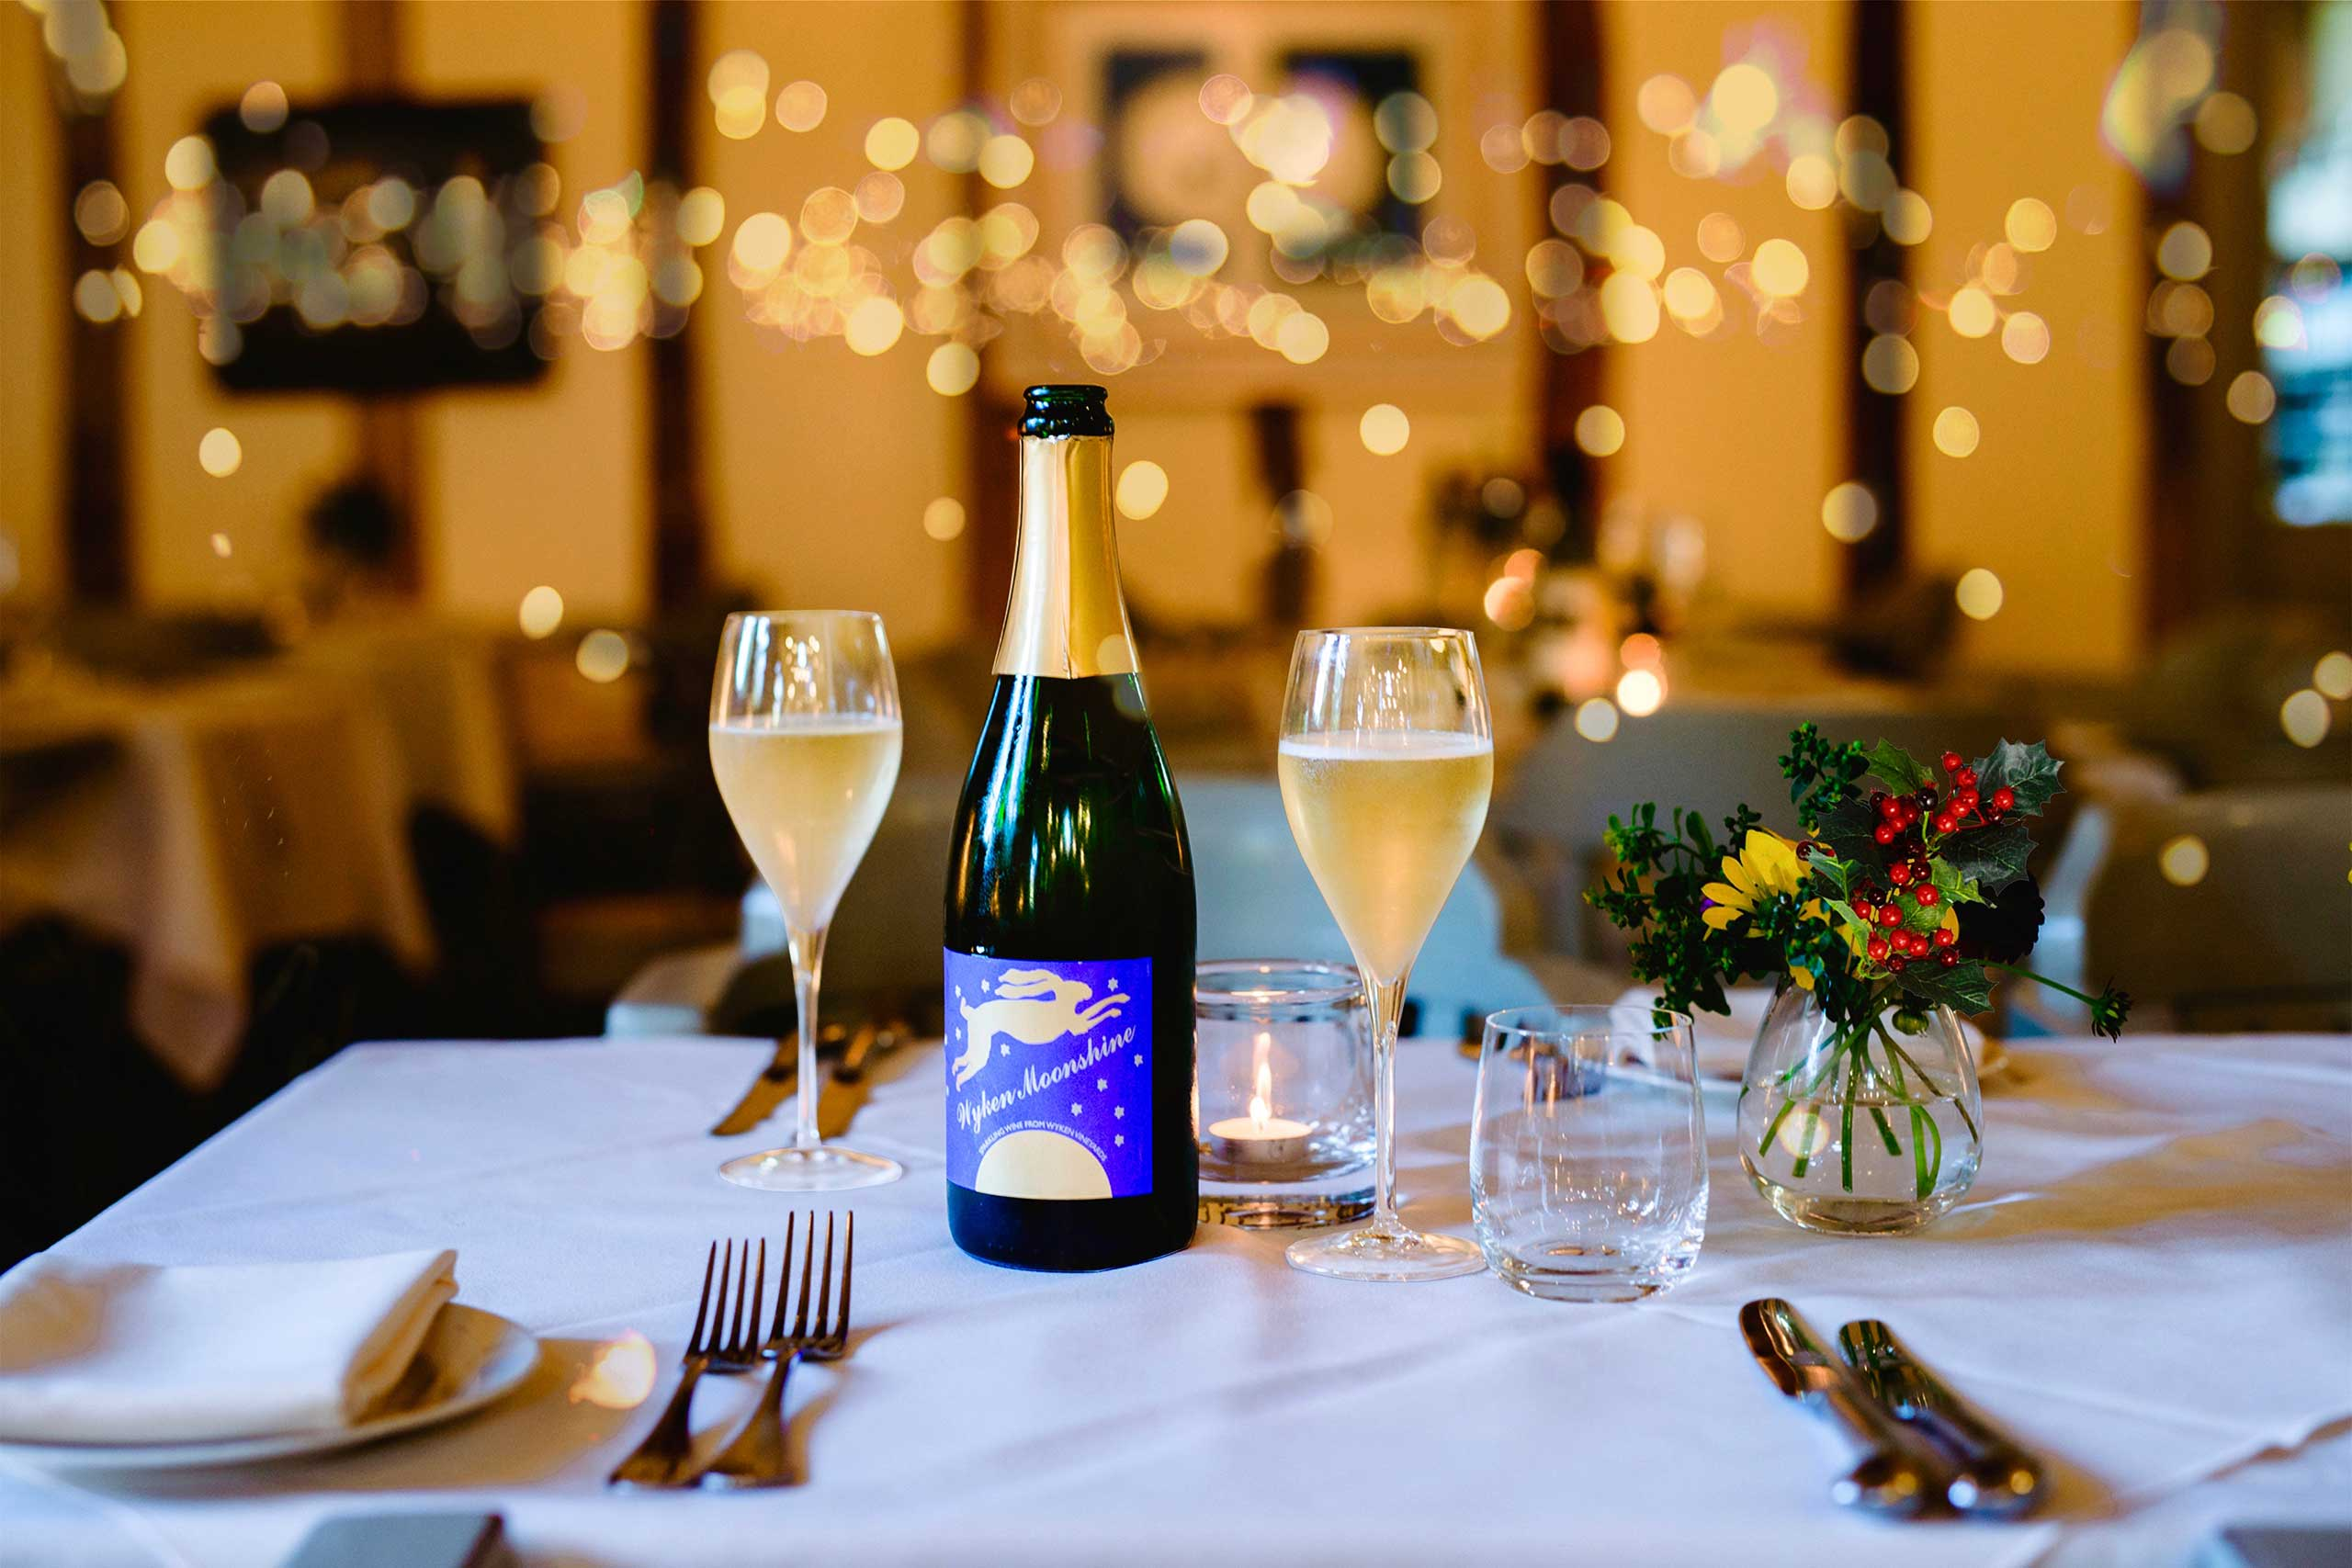 Christmas at The Leaping Hare Vineyard Restaurant & Café